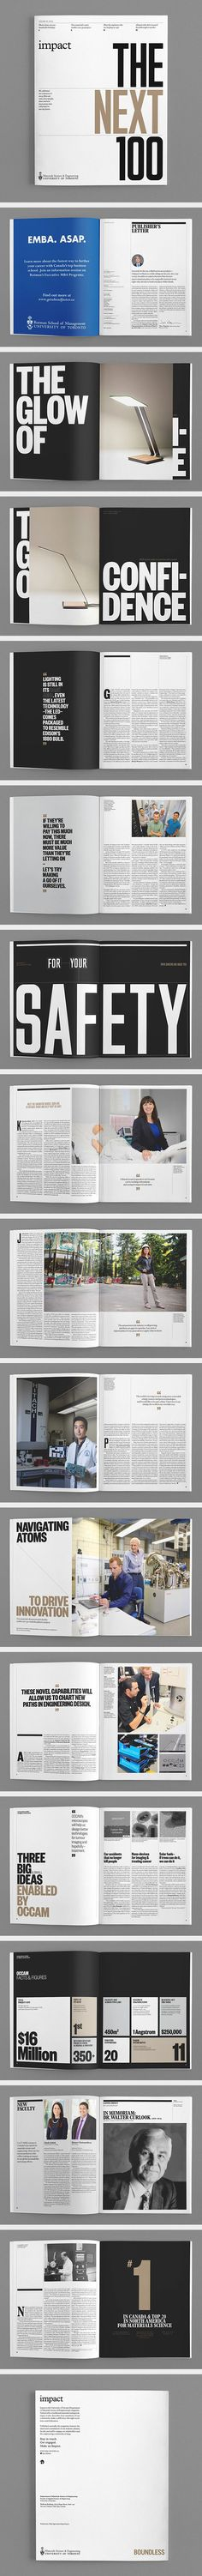 This magazine uses a three column magazine for the most part. I like how some images take up to 5 columns but living enough space in the bottom to fill it with information. One think I find unnecessary is the design elements in the gutters; I think they would look better empty rather than with the lines. AR. If you're a user experience professional, listen to The UX Blog Podcast on iTunes.